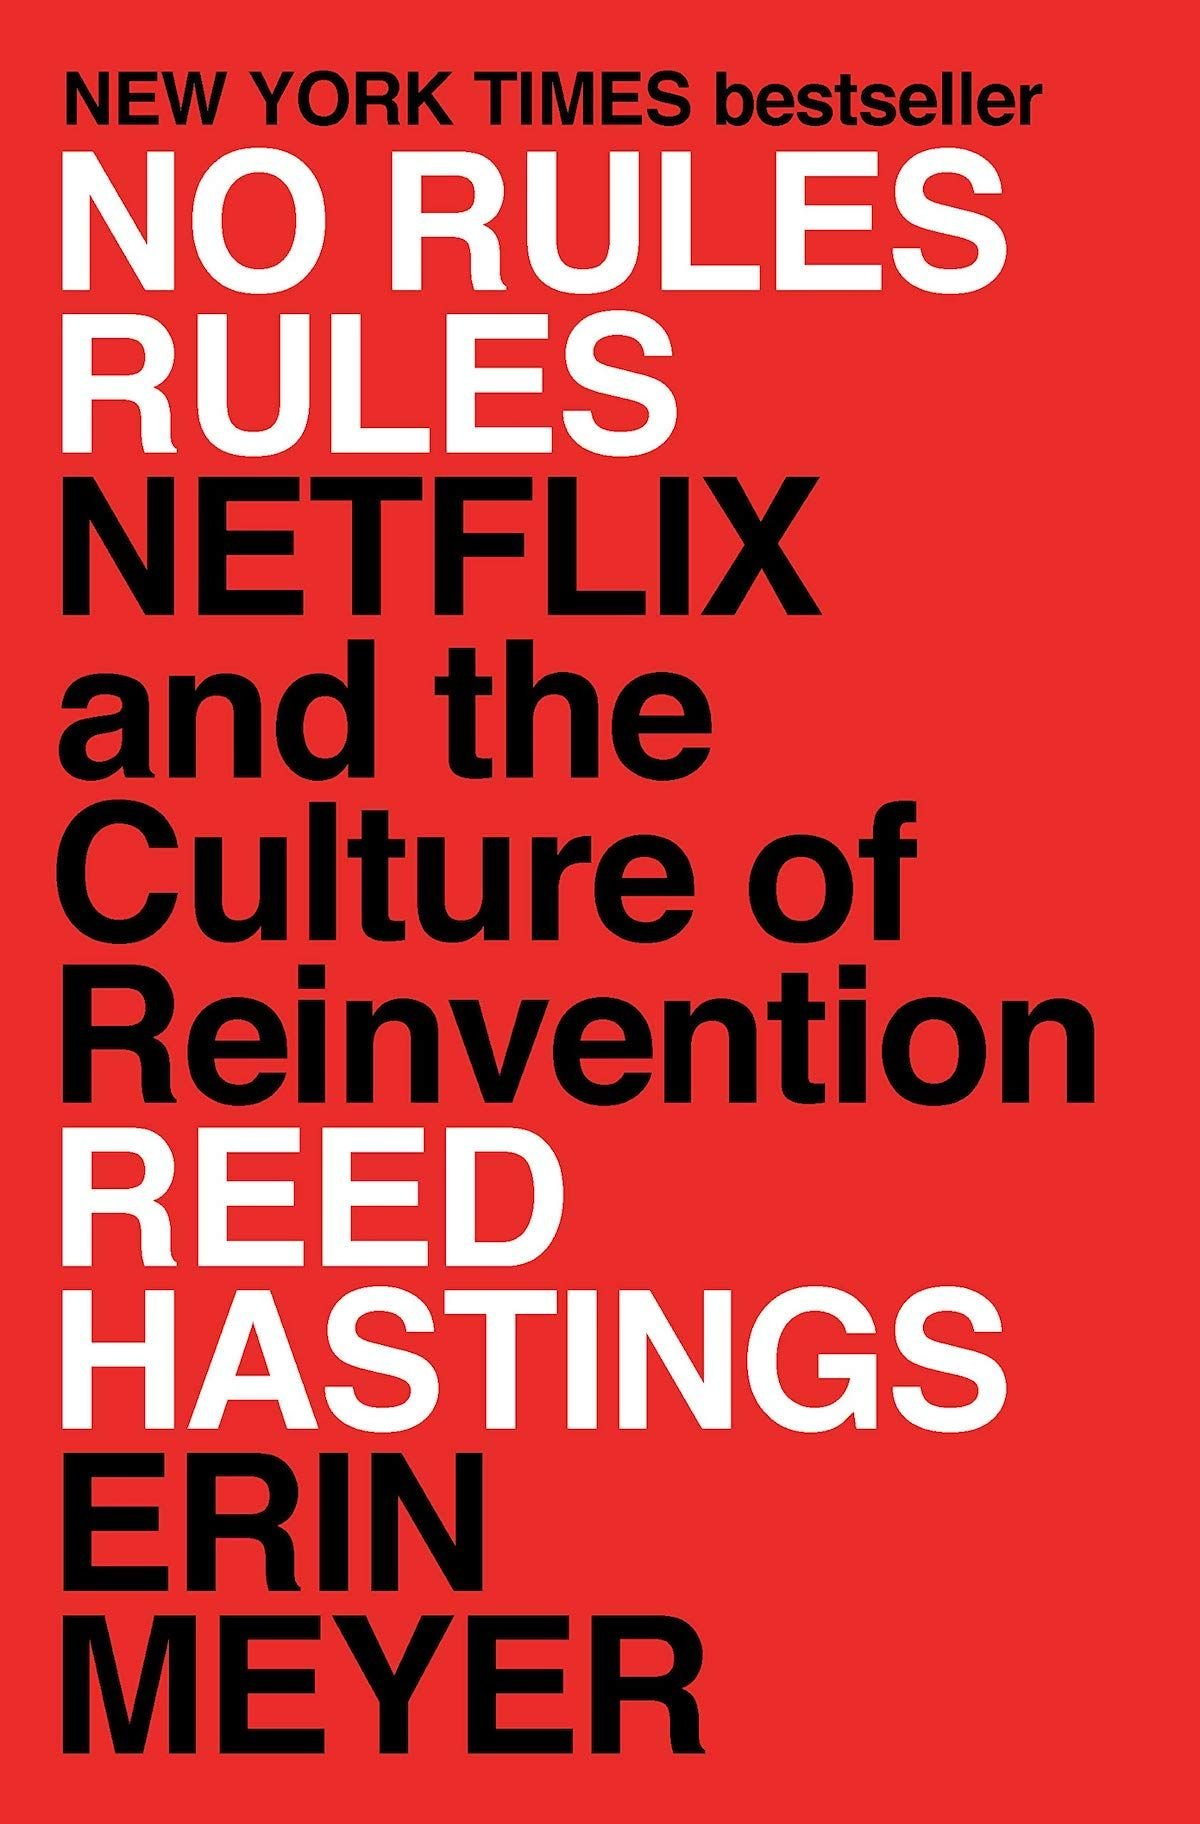 No Rules Rules: Netflix and the Culture of Reinvention (Englisch). Von Reed Hastings und Erin Meyer, Penguin Press, September 2020, ISBN 9781984877864